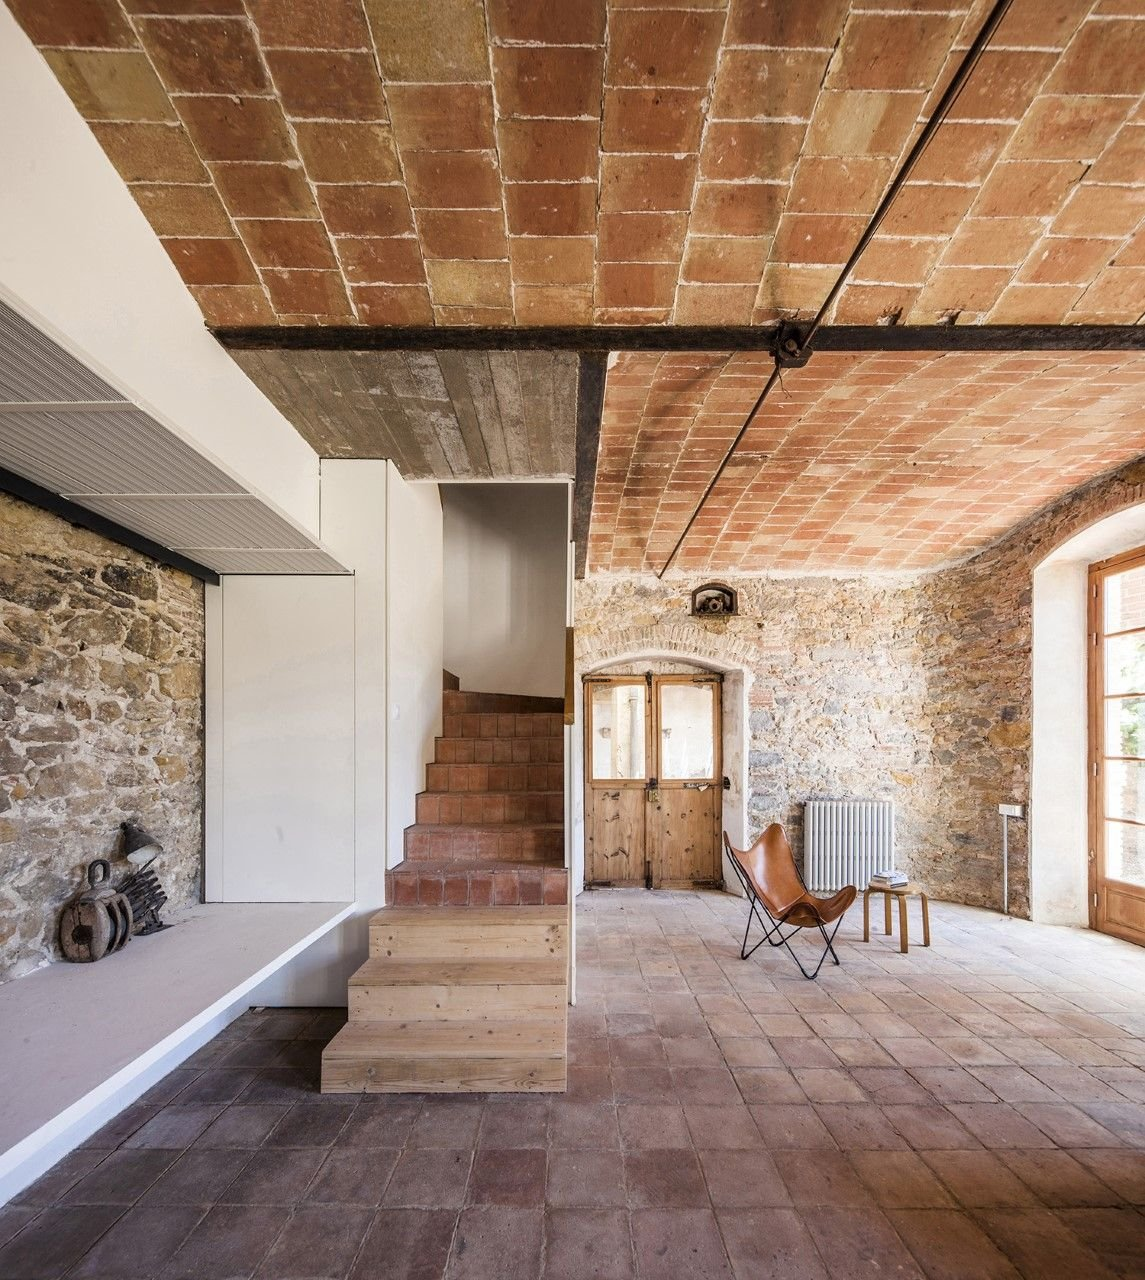 Explore a converted chocolate factory with rustic, industrial-style interiors